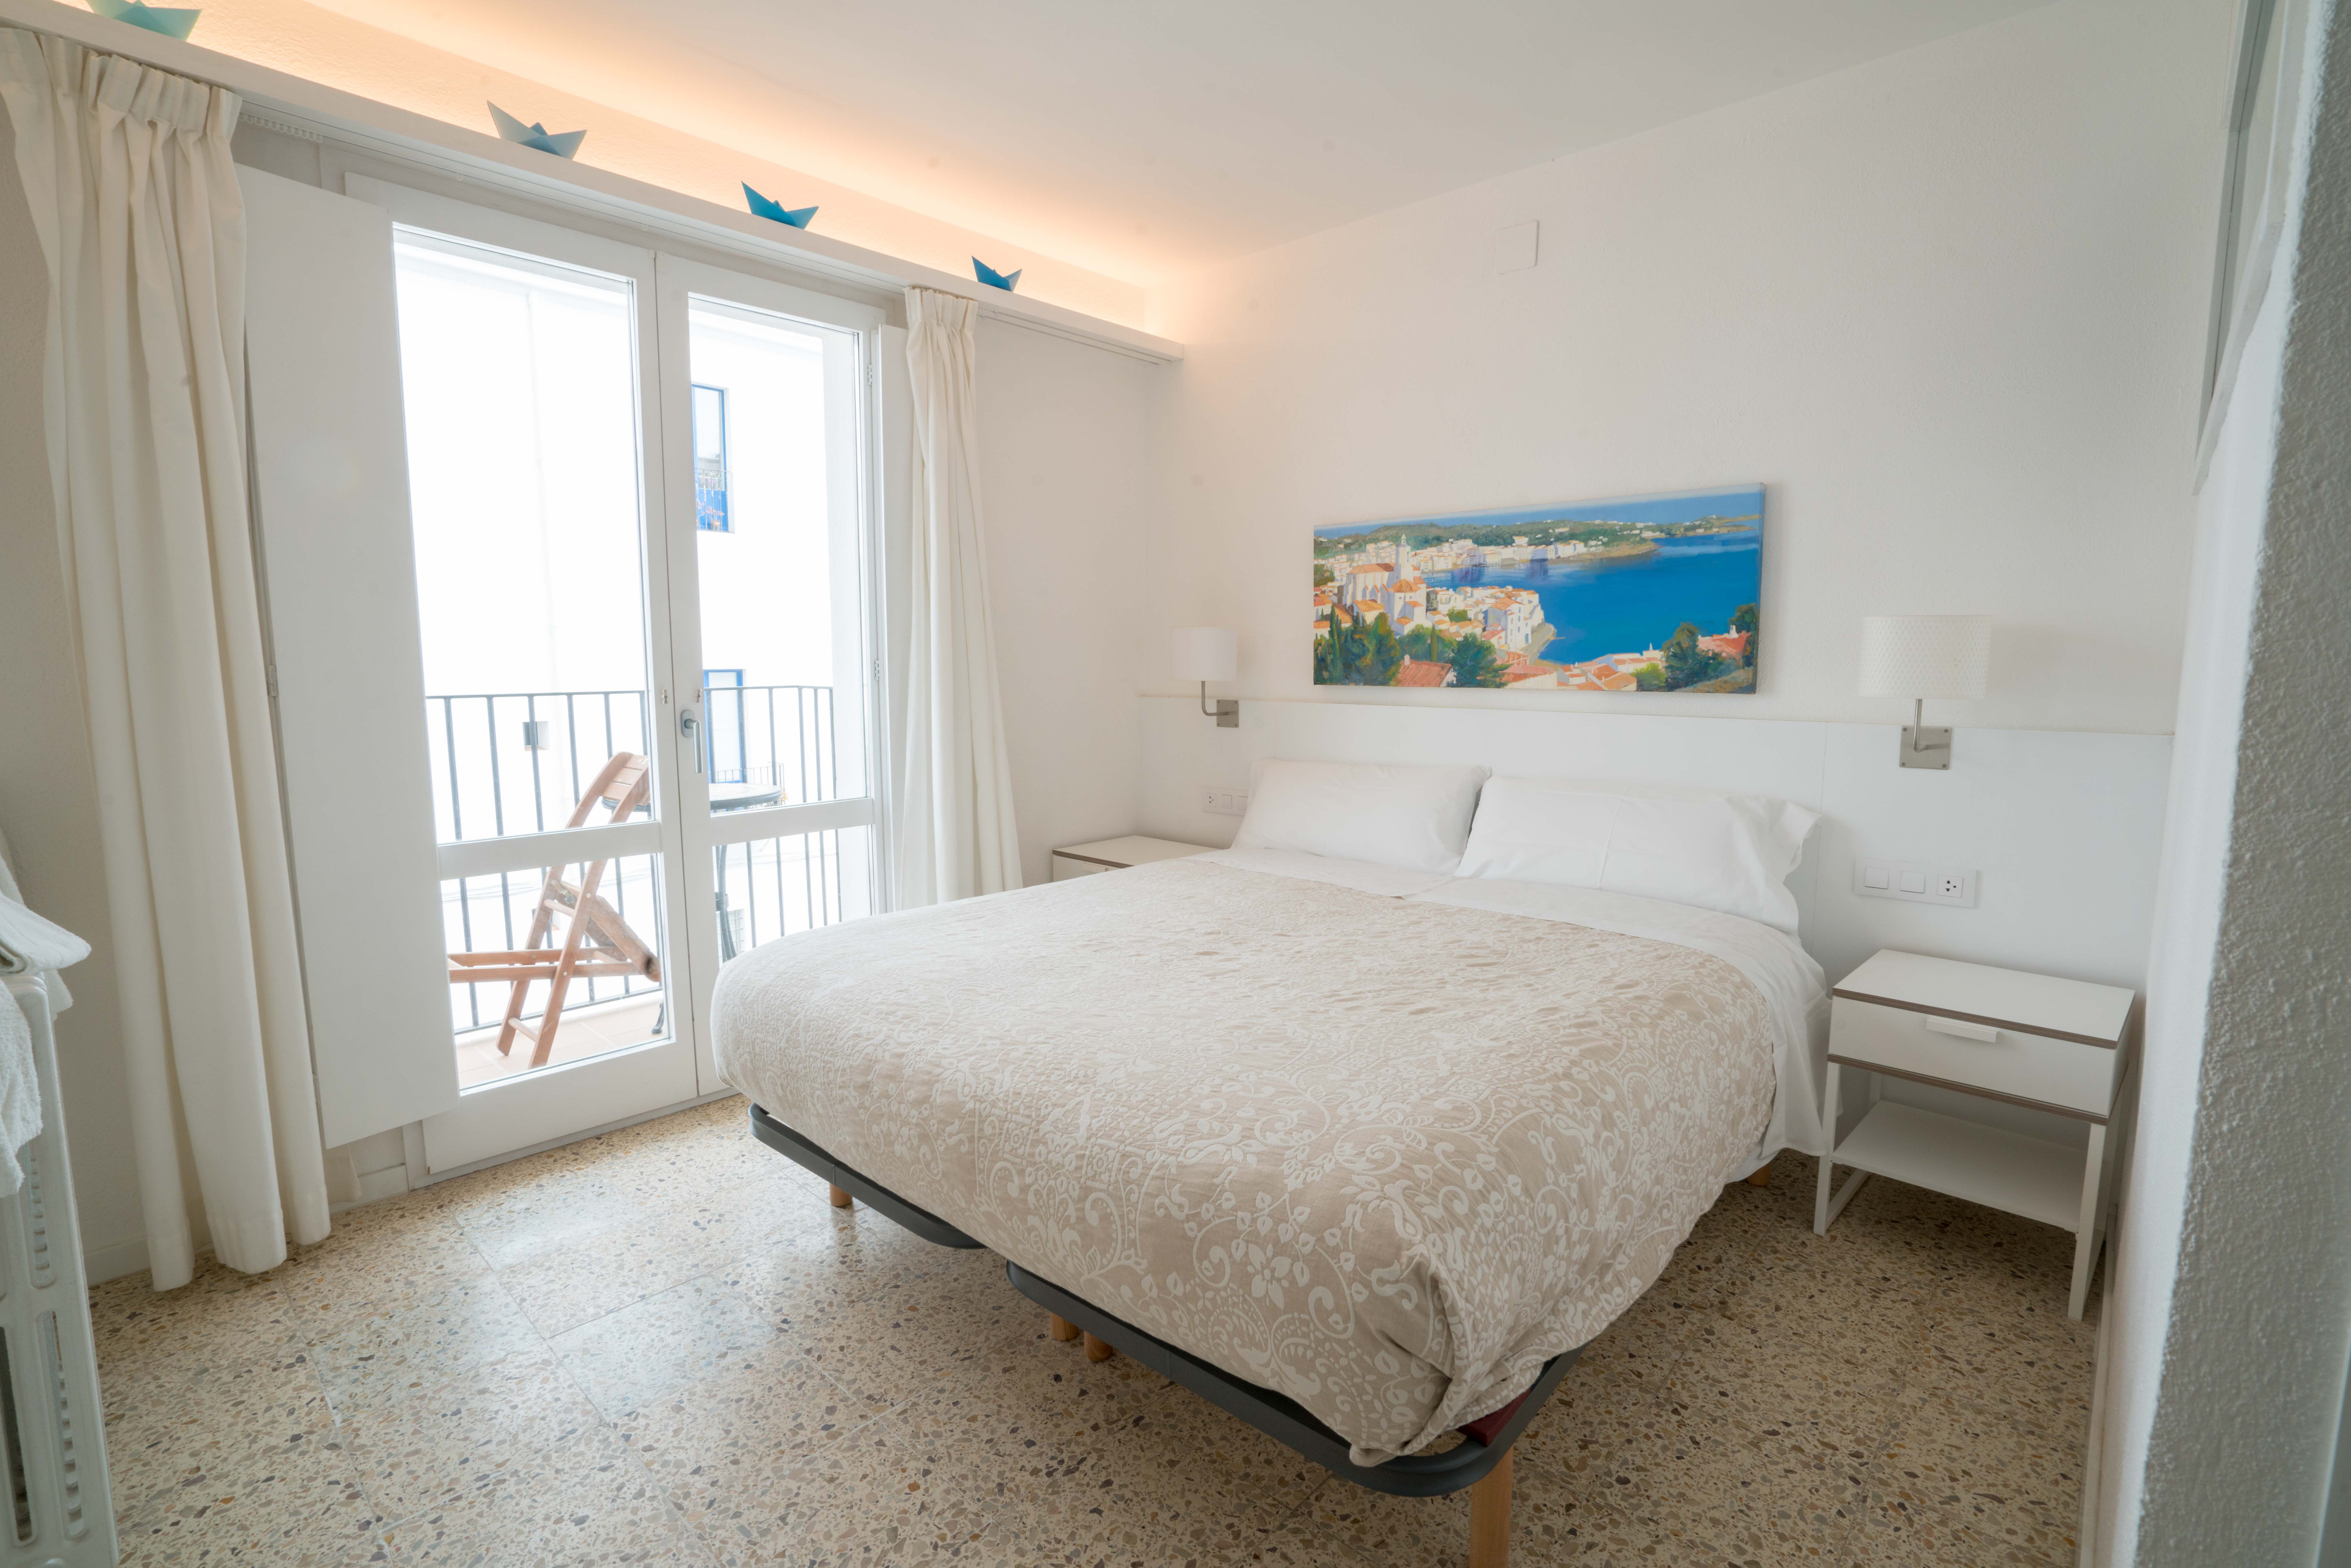 Room with balcony and side sea view